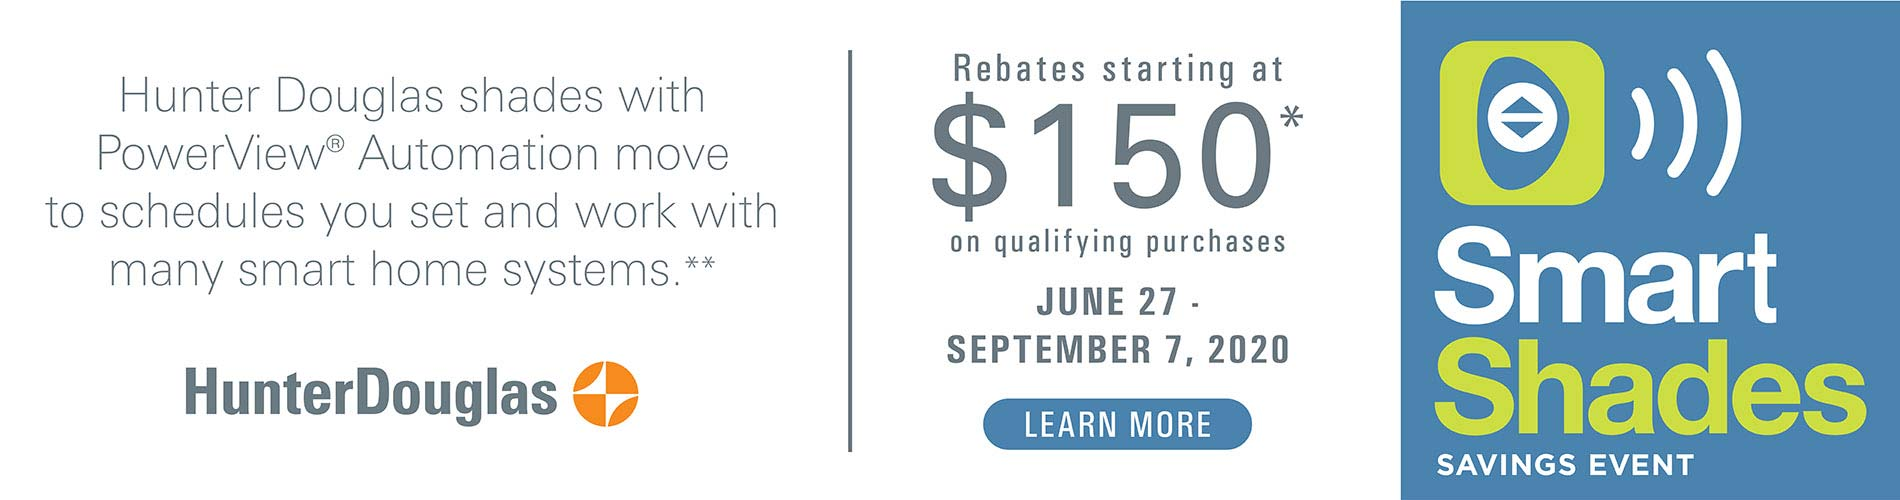 Rebates starting at $150 during our Smart Shades Savings Event at LaCour's Carpet World in Baton Rouge.